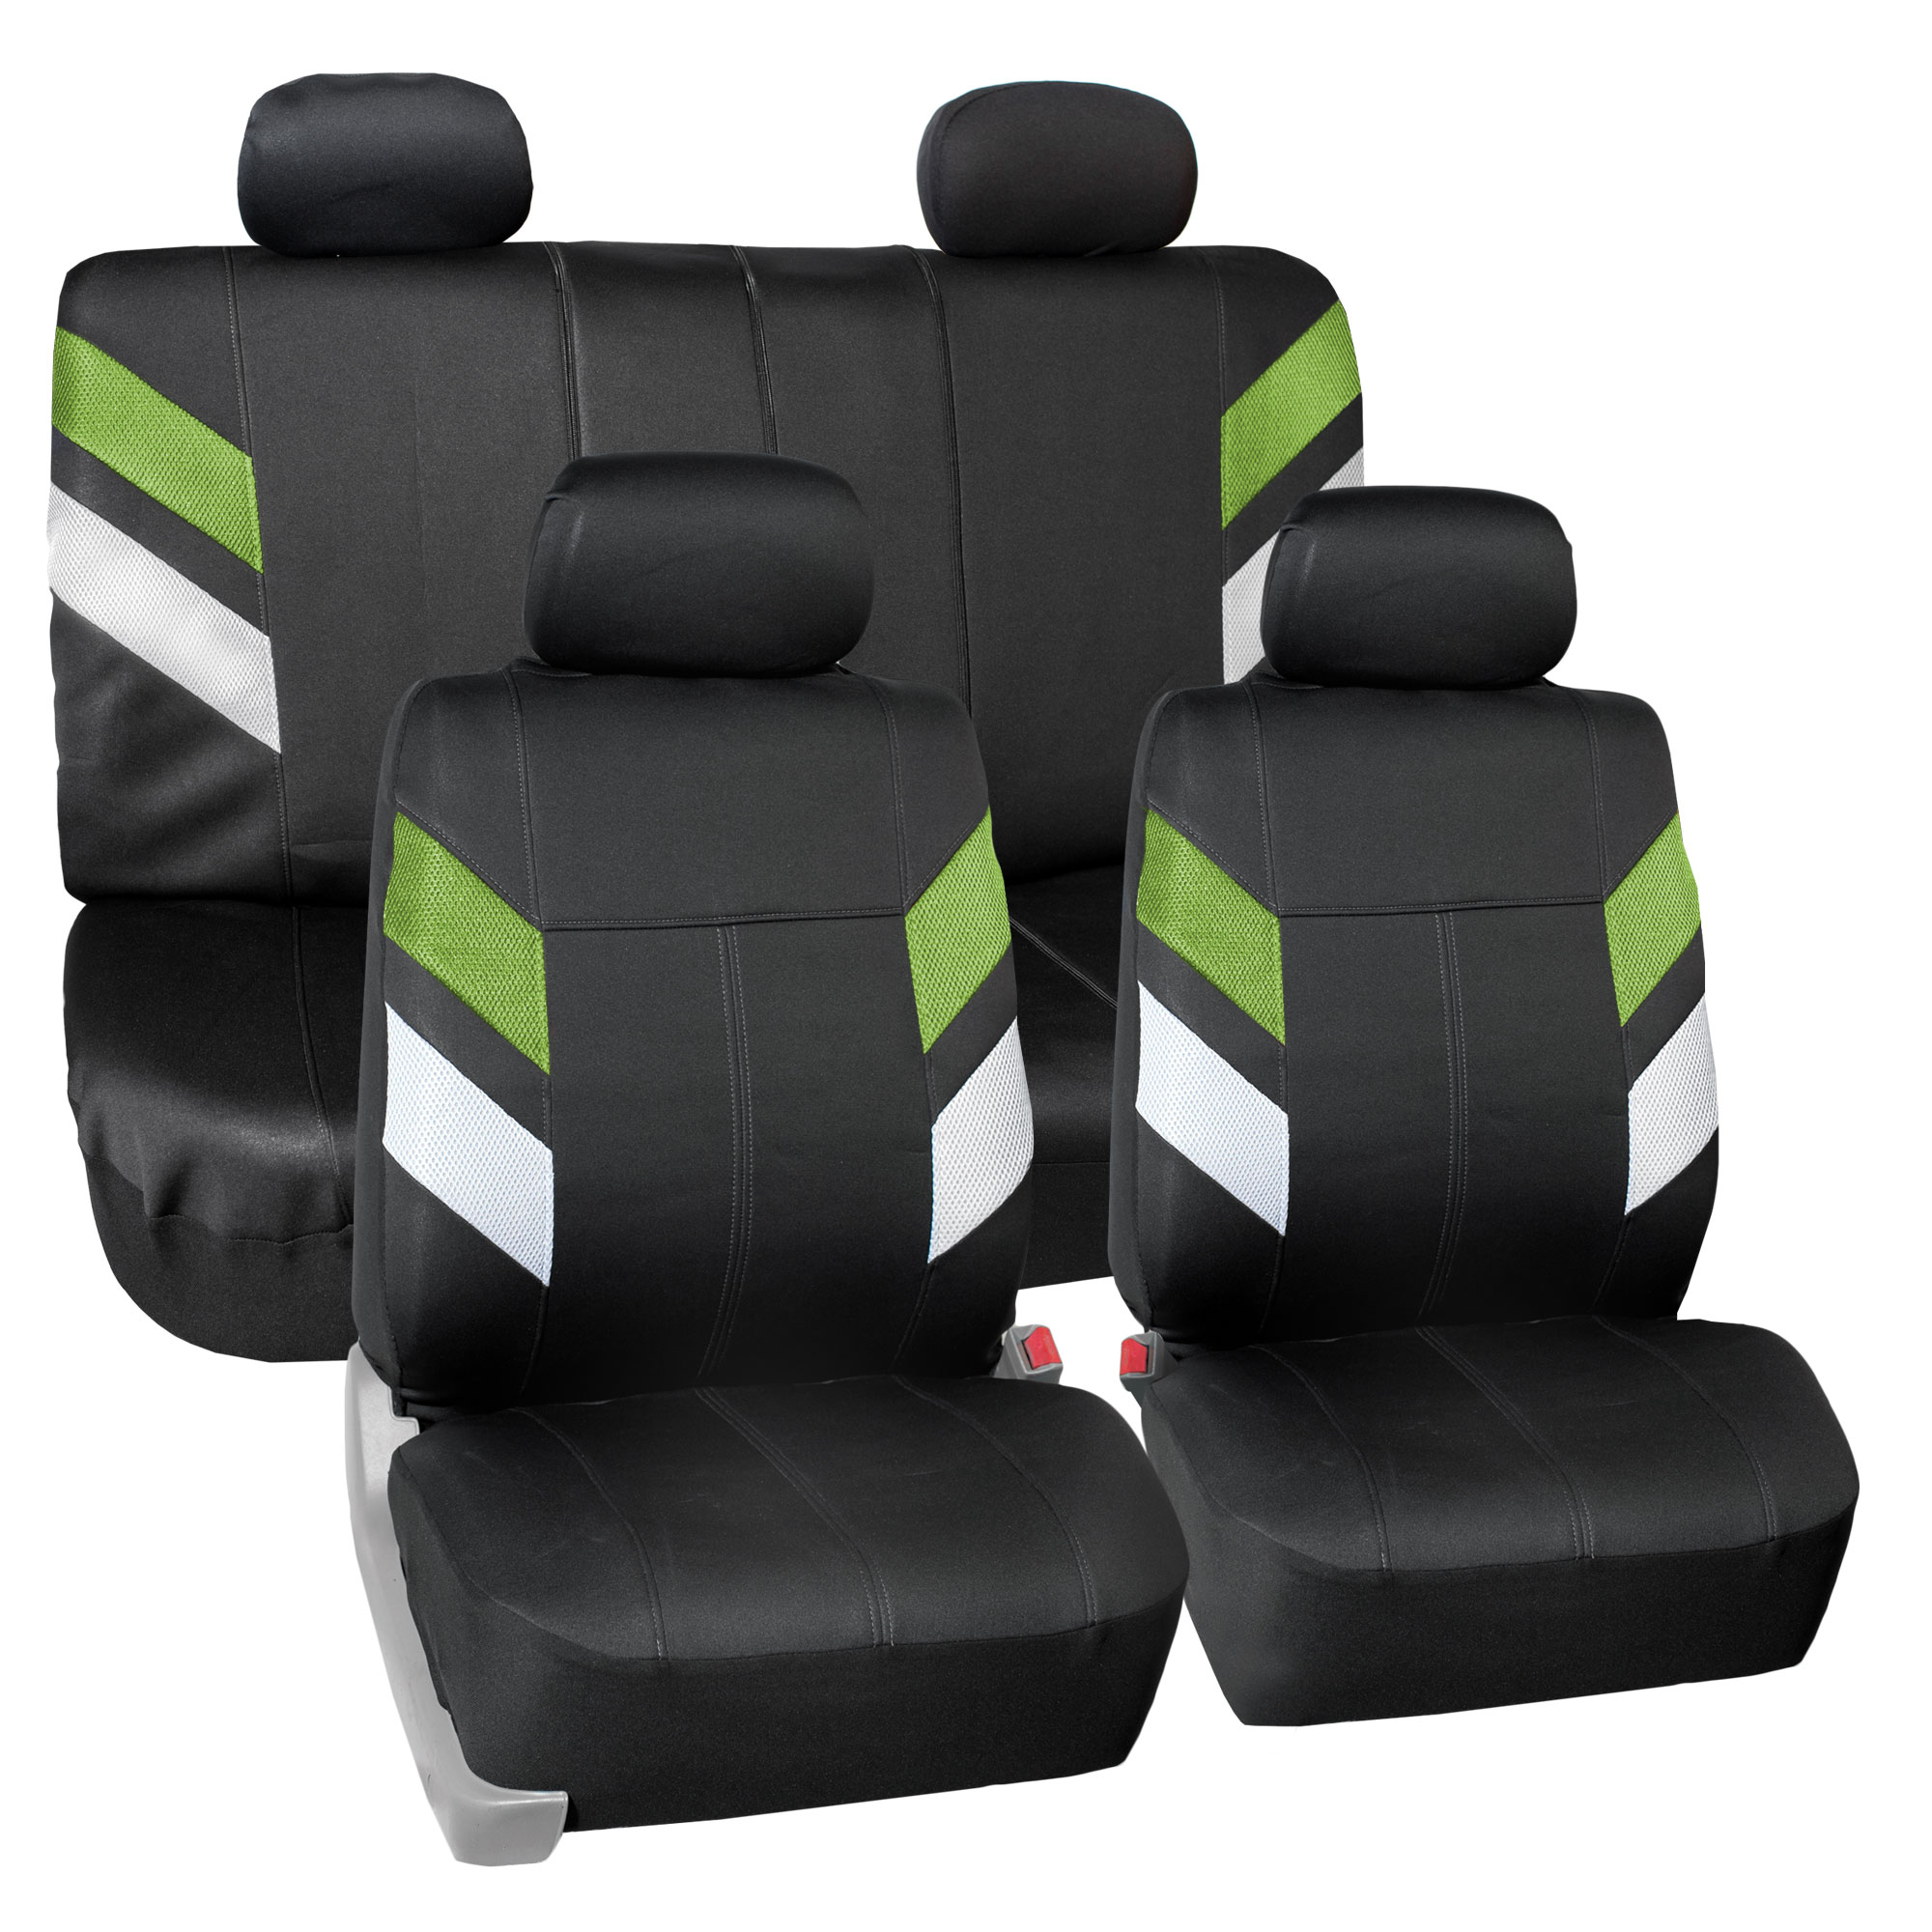 FH Group, Neoprene Car Seat Covers for Auto Car SUV Van 4 Headrest Full Set 12 Colors